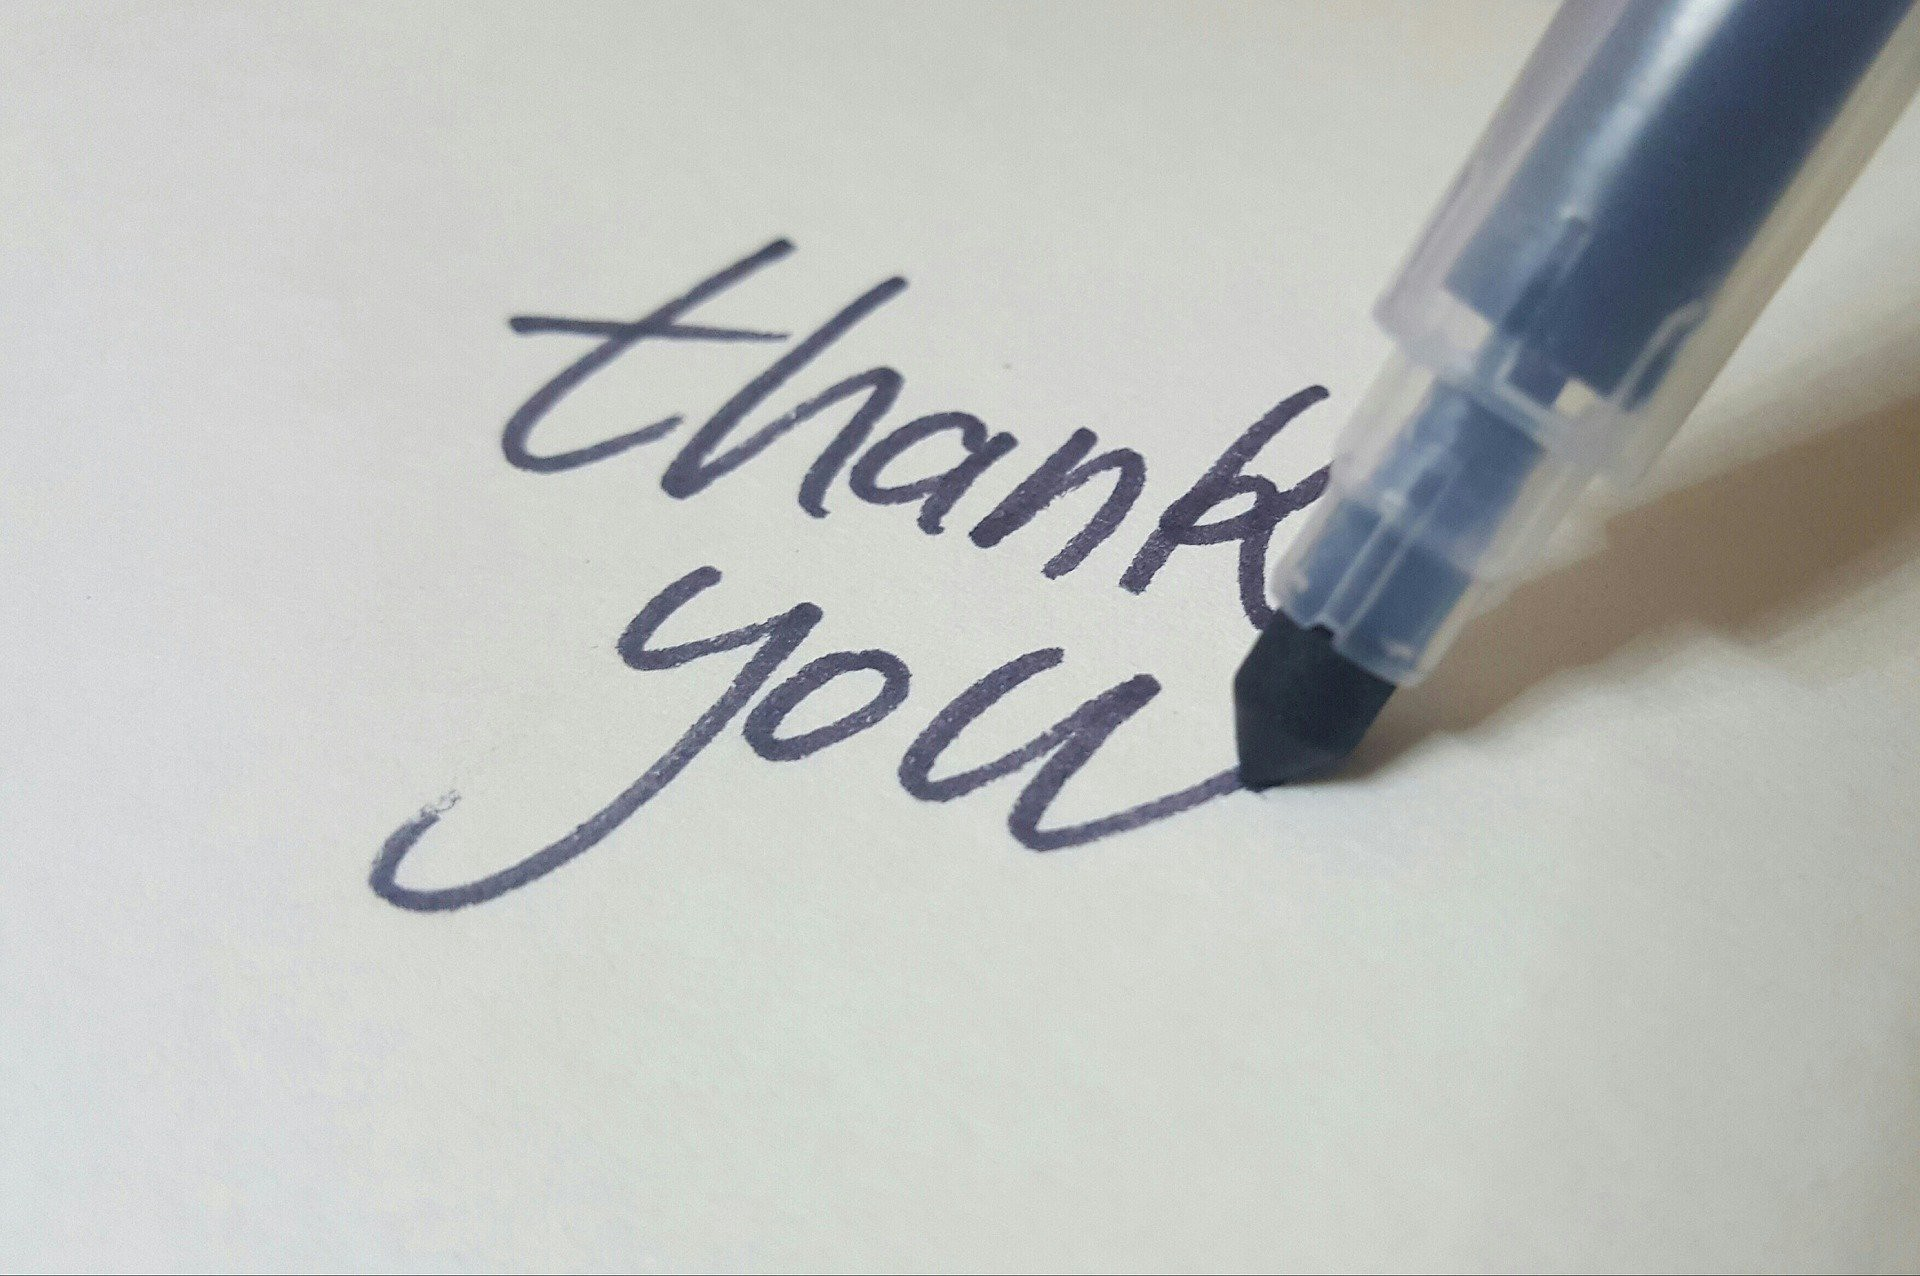 Thank you written on a piece of paper